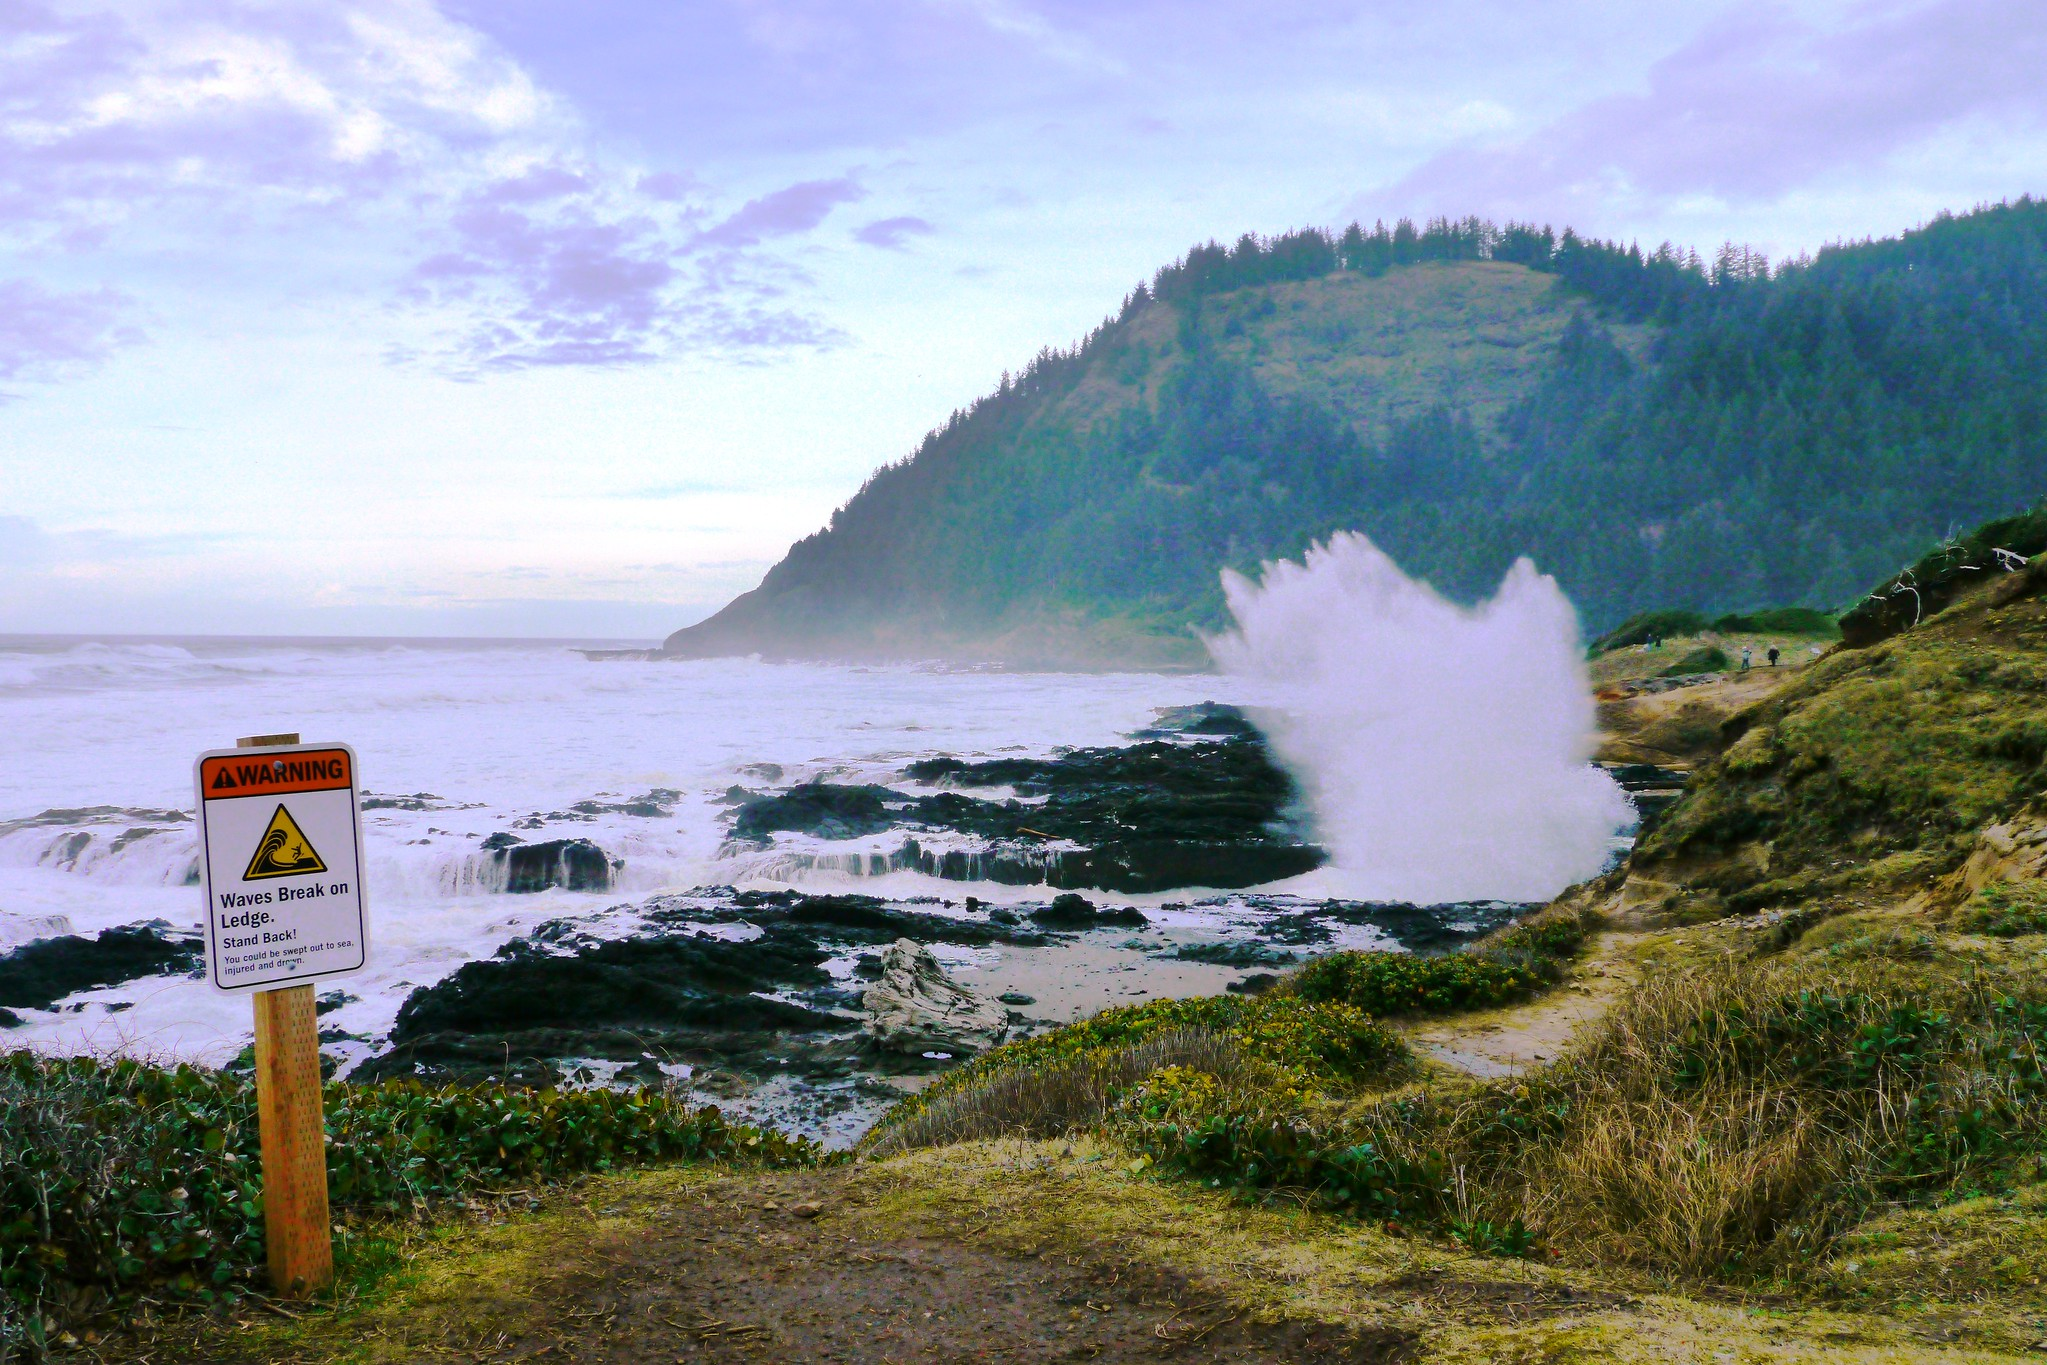 Cape Perpetua Scenic Area. Photo by Rick Obst